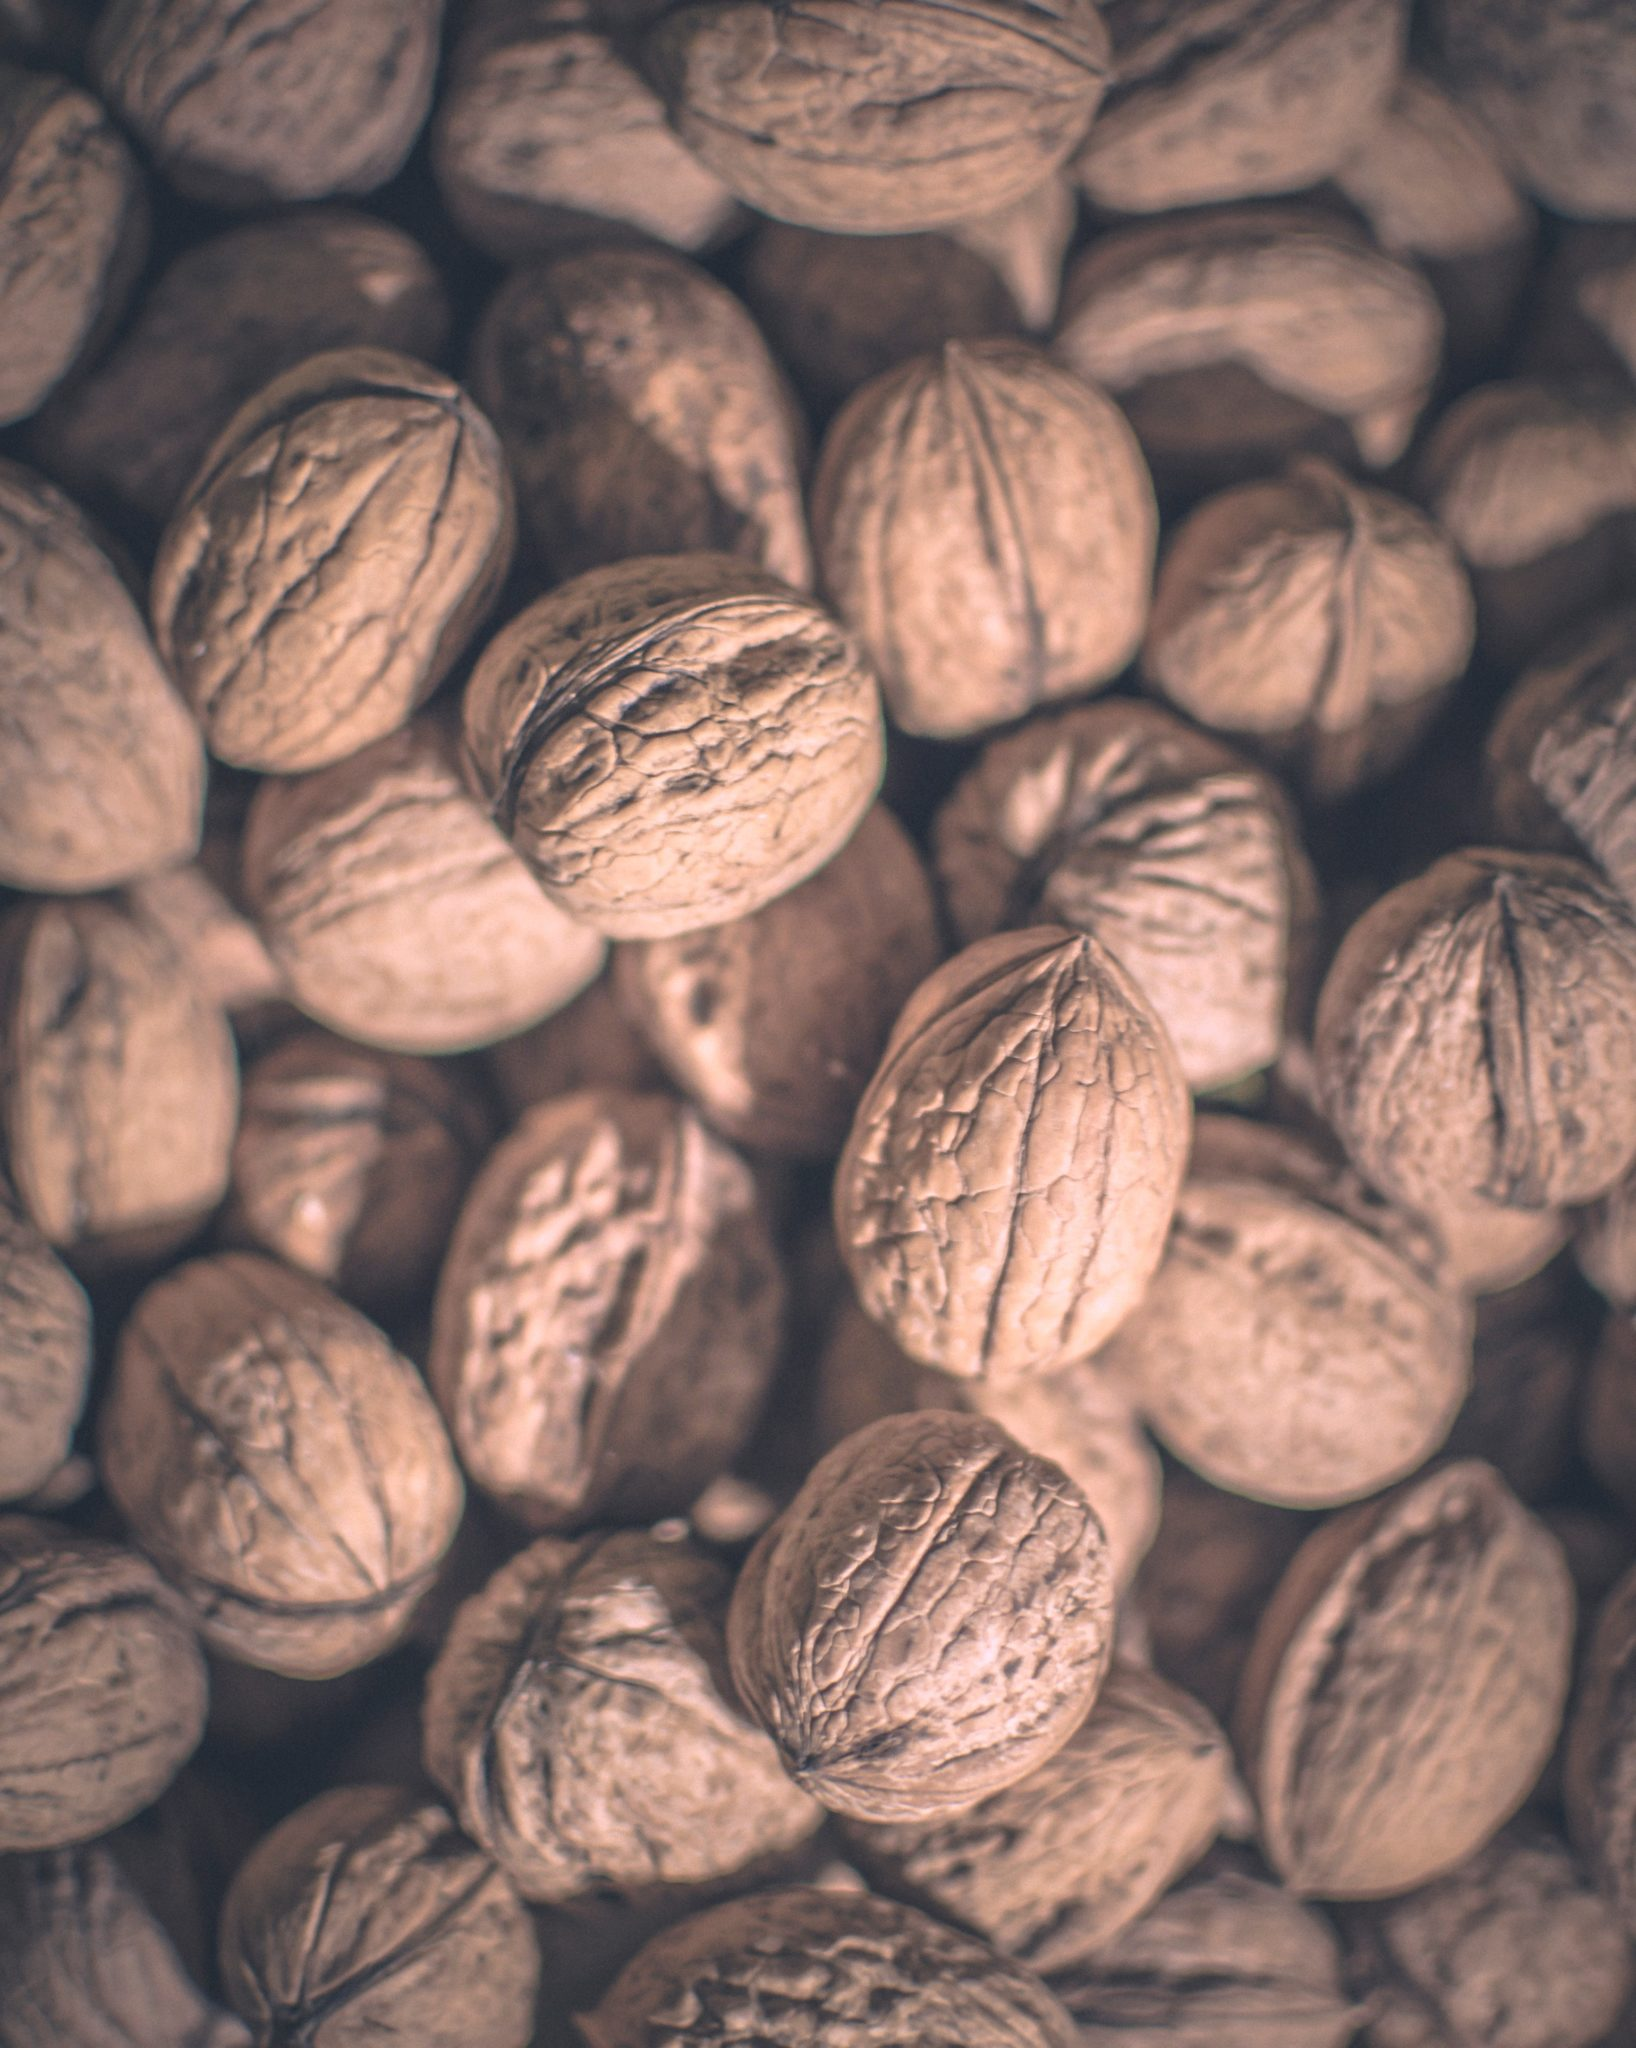 image of shelled walnuts to represent foods that help with pregnancy